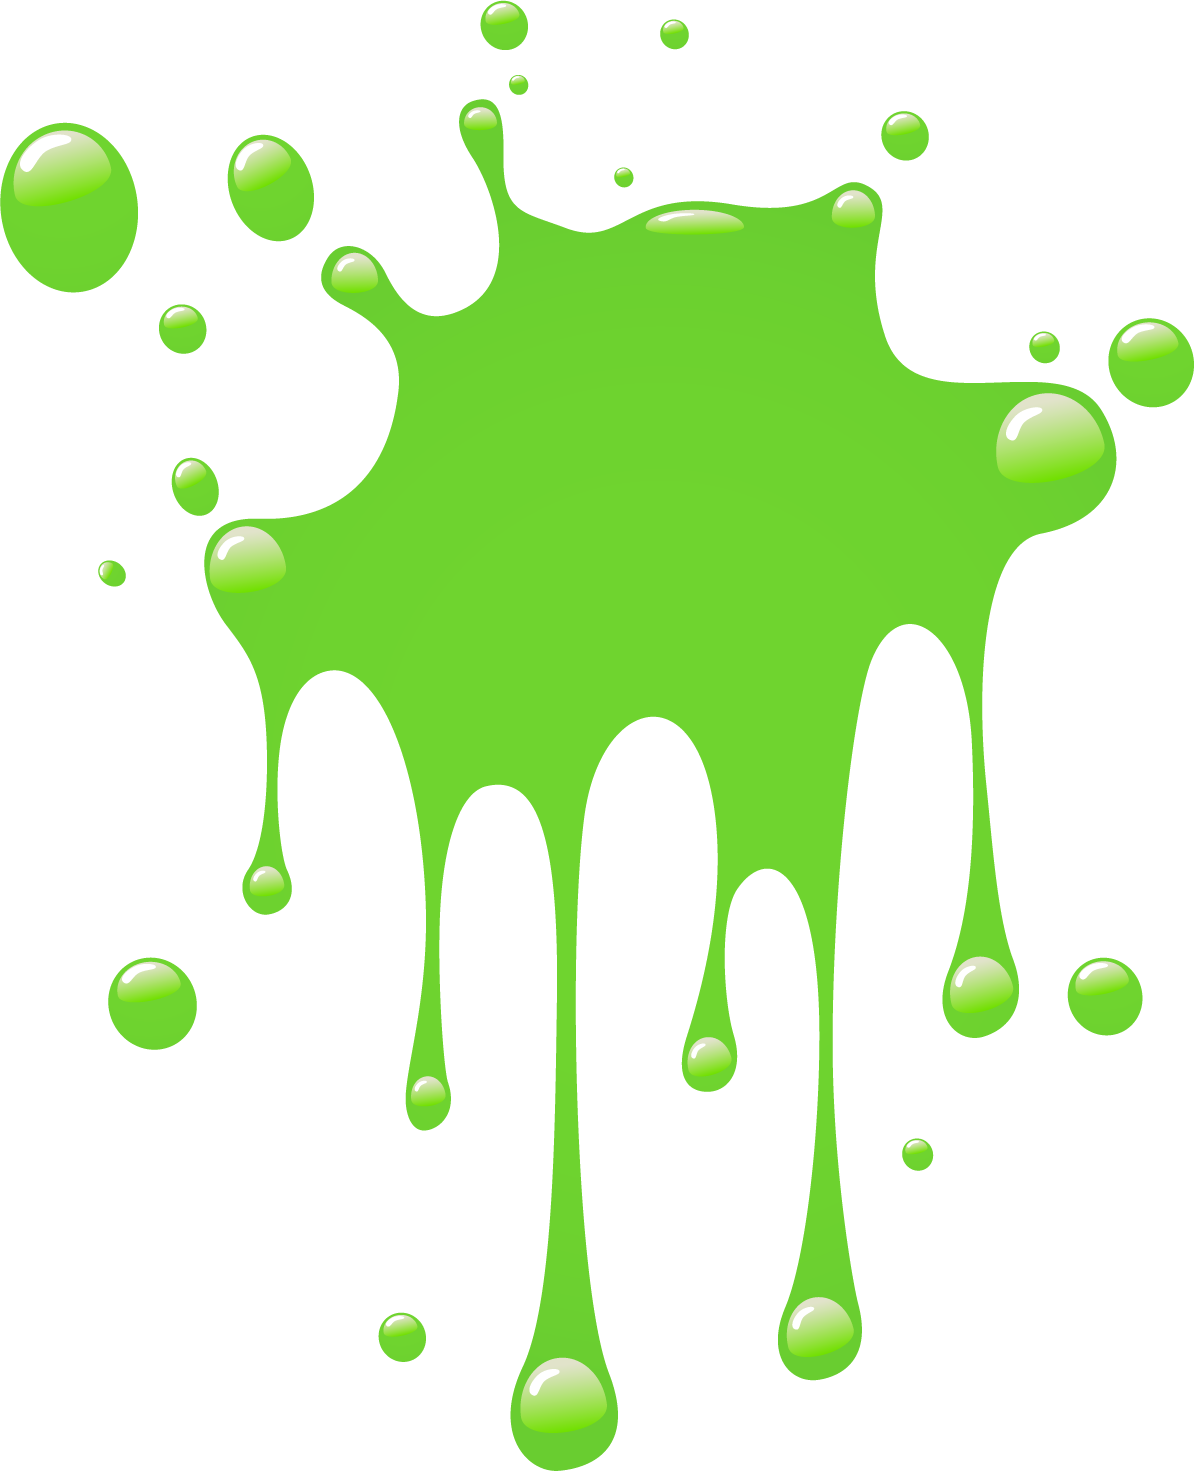 Slime images clipart